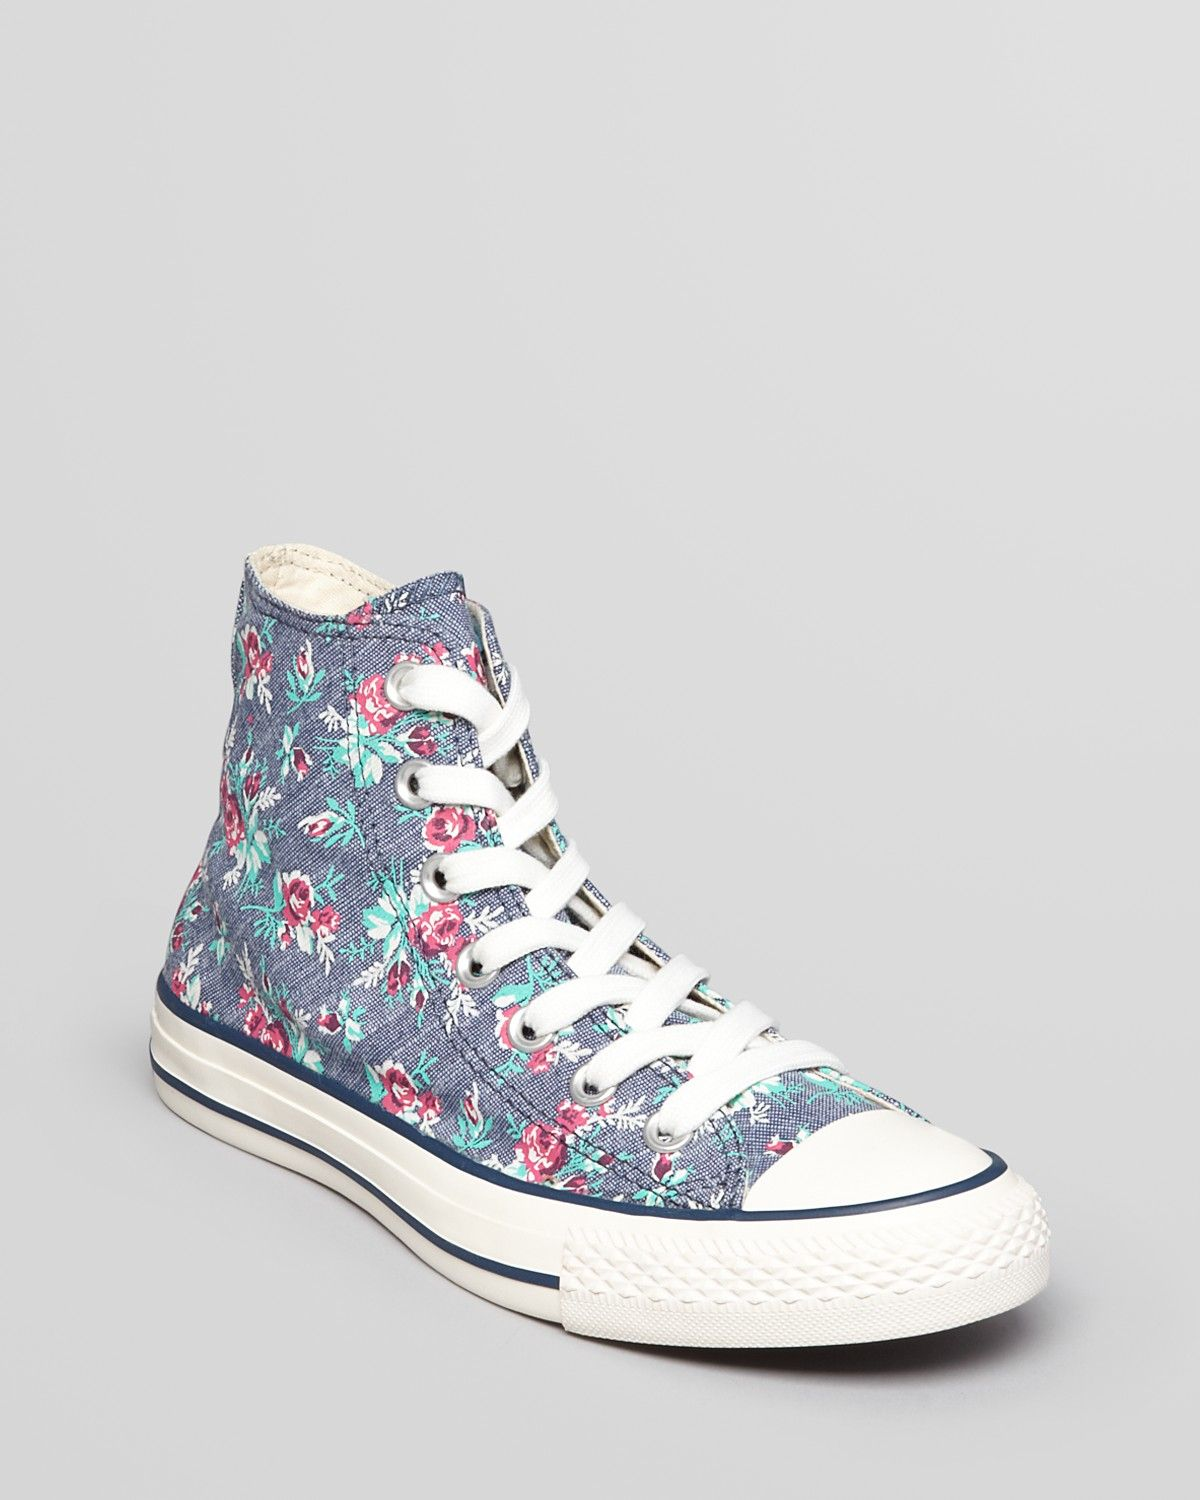 96d1ad51f814b9 Converse Lace Up High Top Sneakers - All Star Floral Print ...